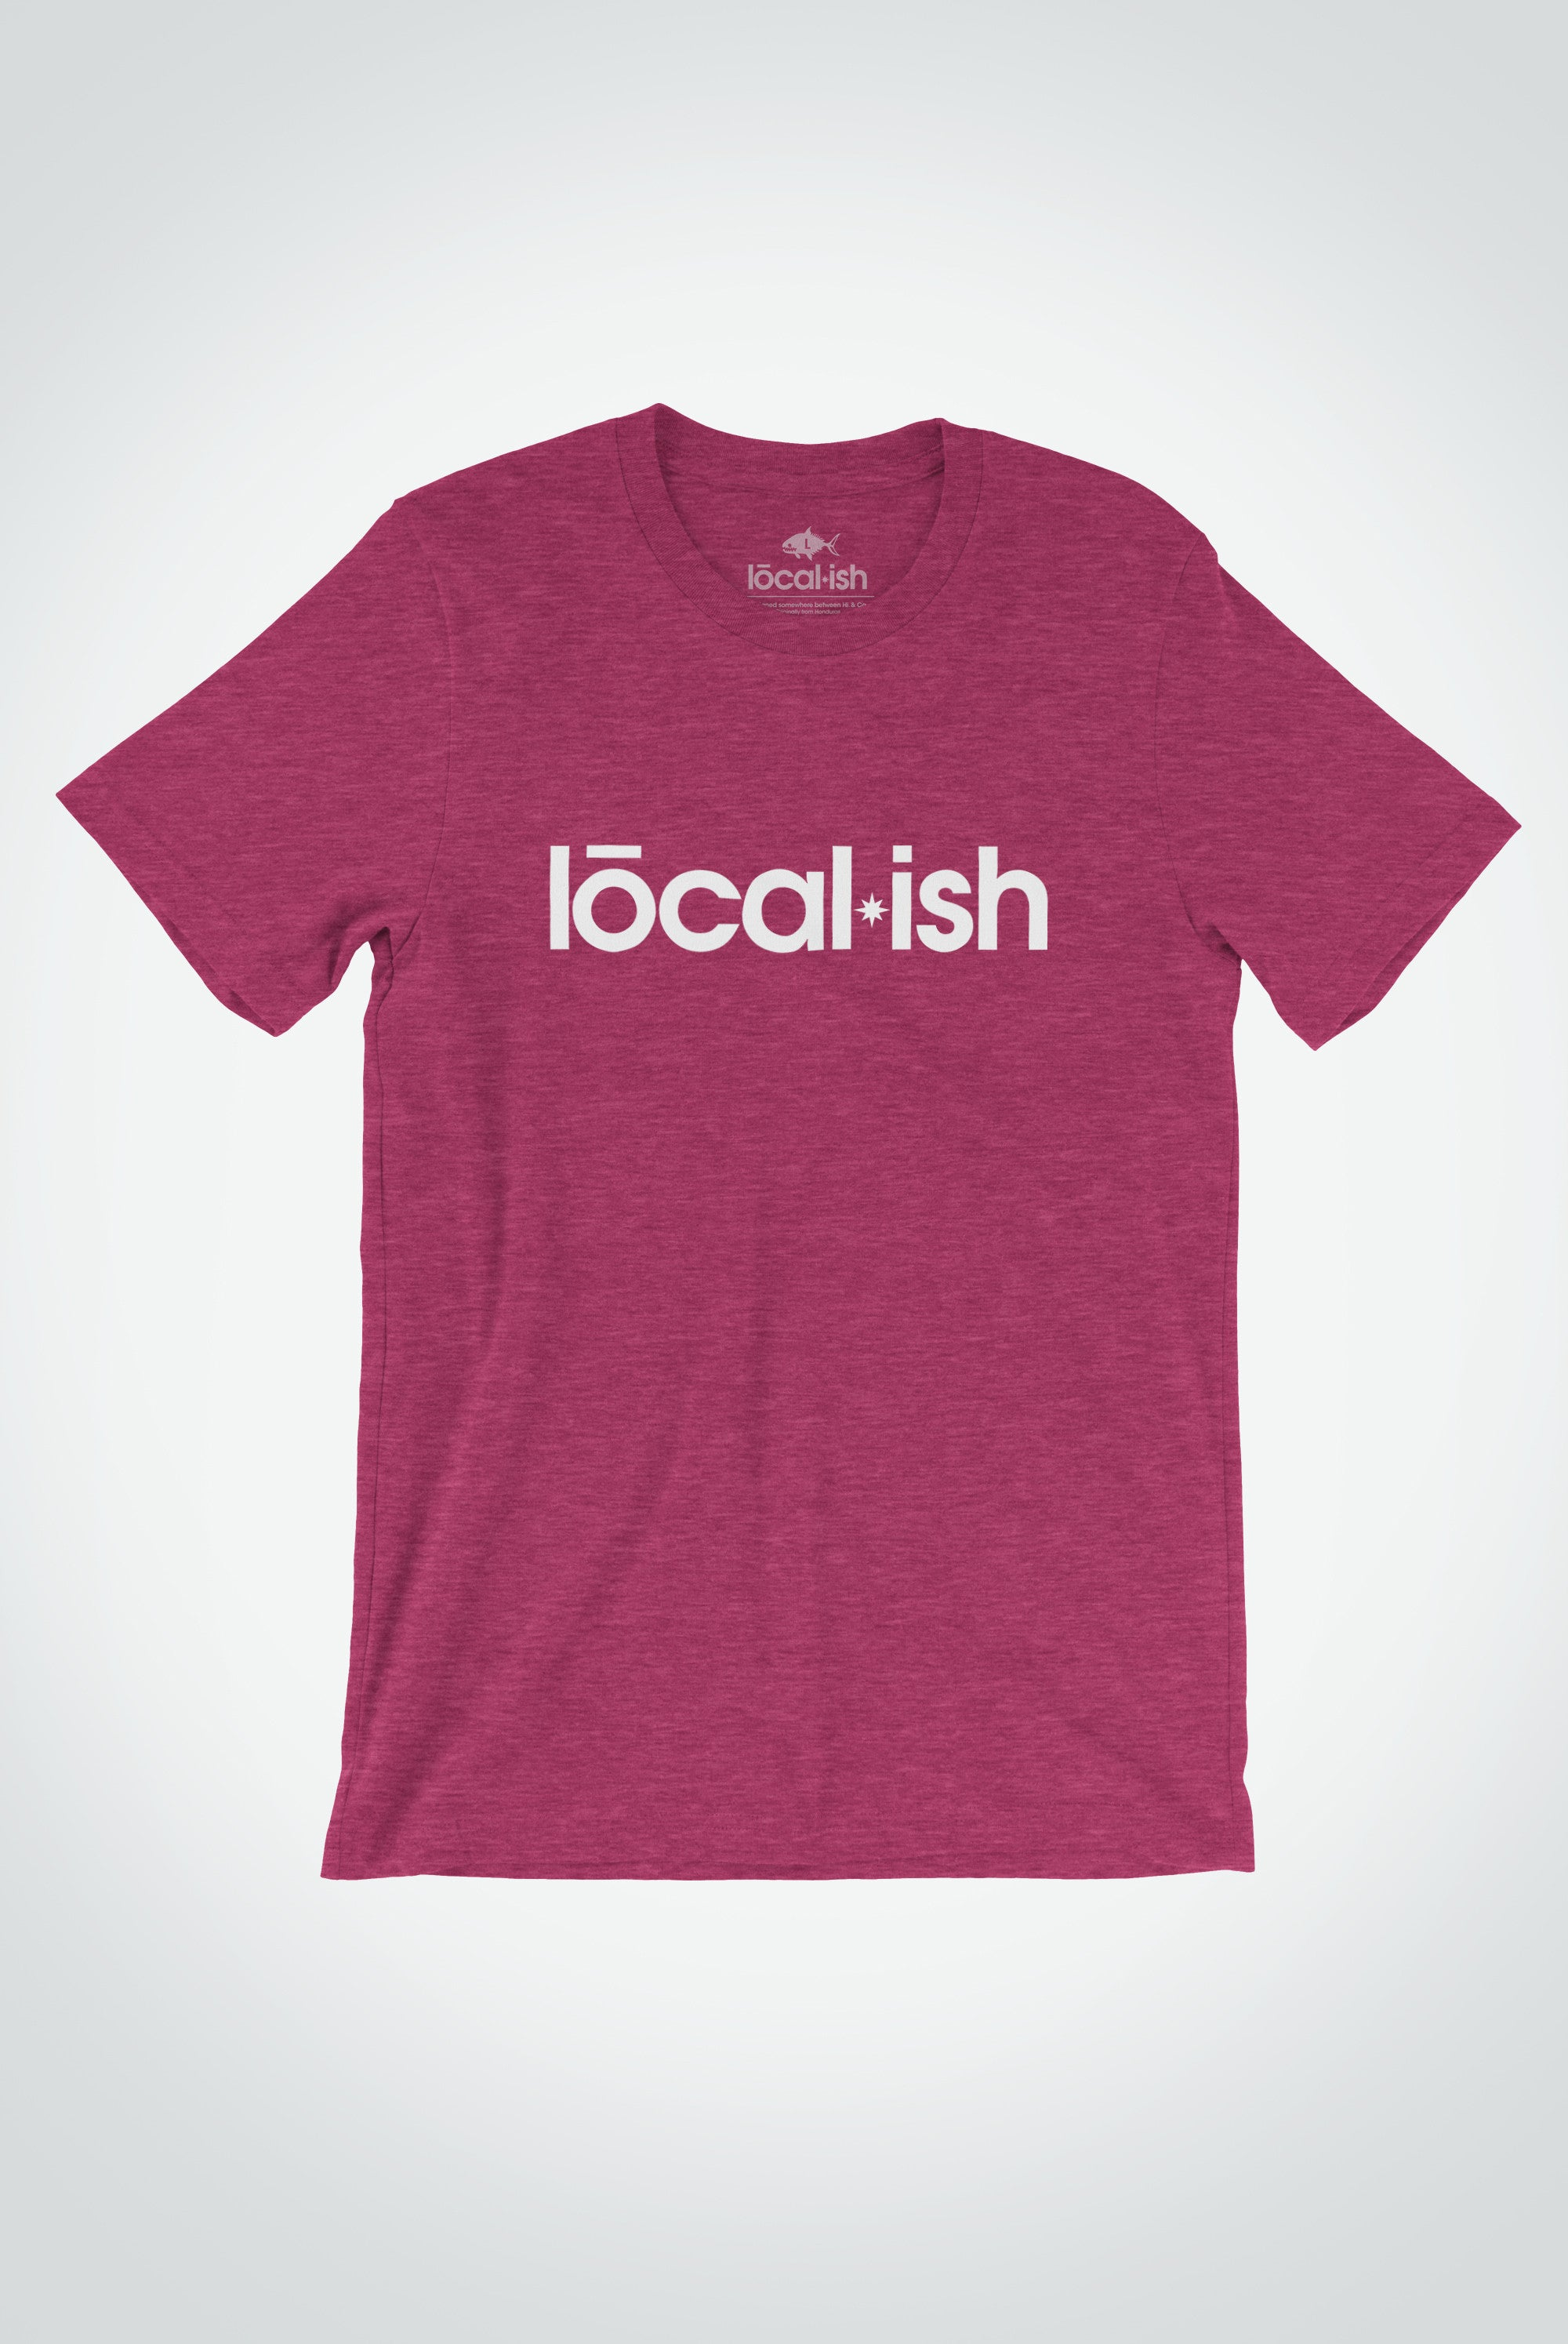 Localish Men's Localish Tee - Raspberry Surf T Shirt